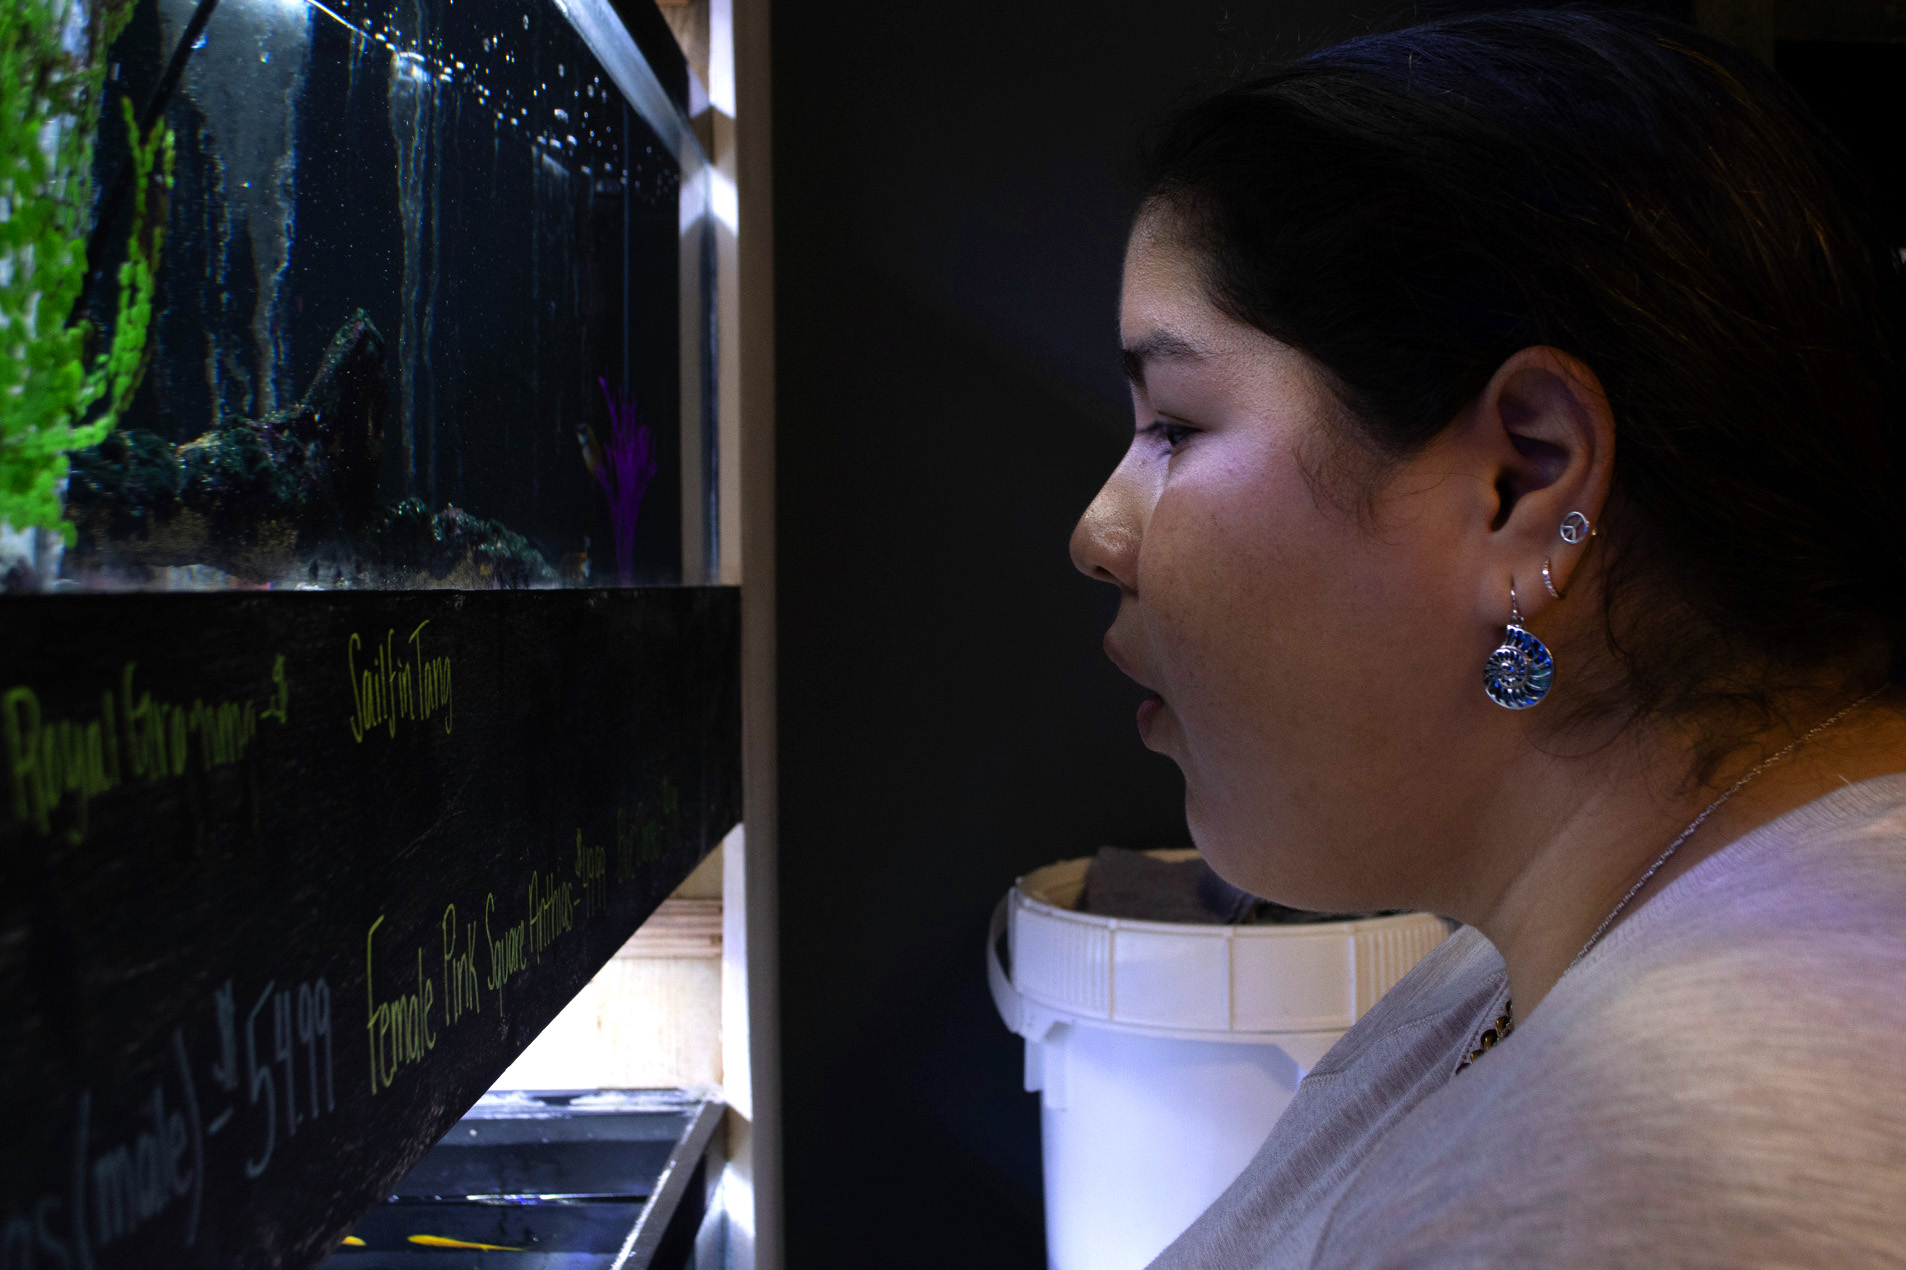 In their free time, Boyce and Manzonelli are still keeping up with their lab and doing what they can to improve it. The two drove to a tropical fish store about an hour away from Carolina's campus to buy some critters that could help clean the tanks as well as some sand, filters, and lights to help the creatures live better.